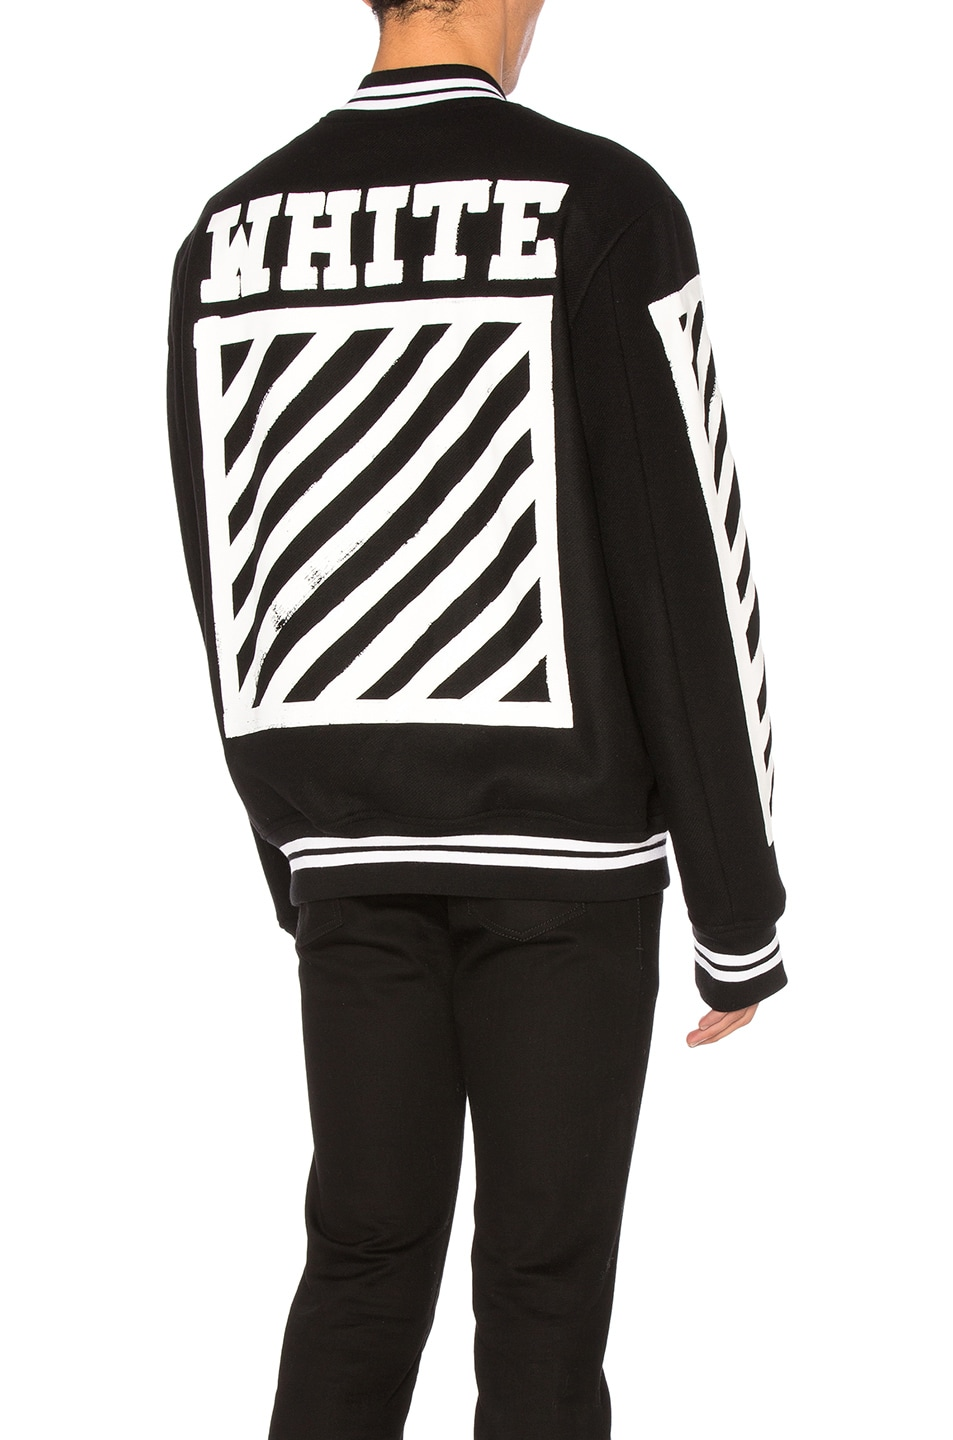 Image 1 of OFF-WHITE Diagonals Varsity Jacket in Black   White 31d8a499dcee